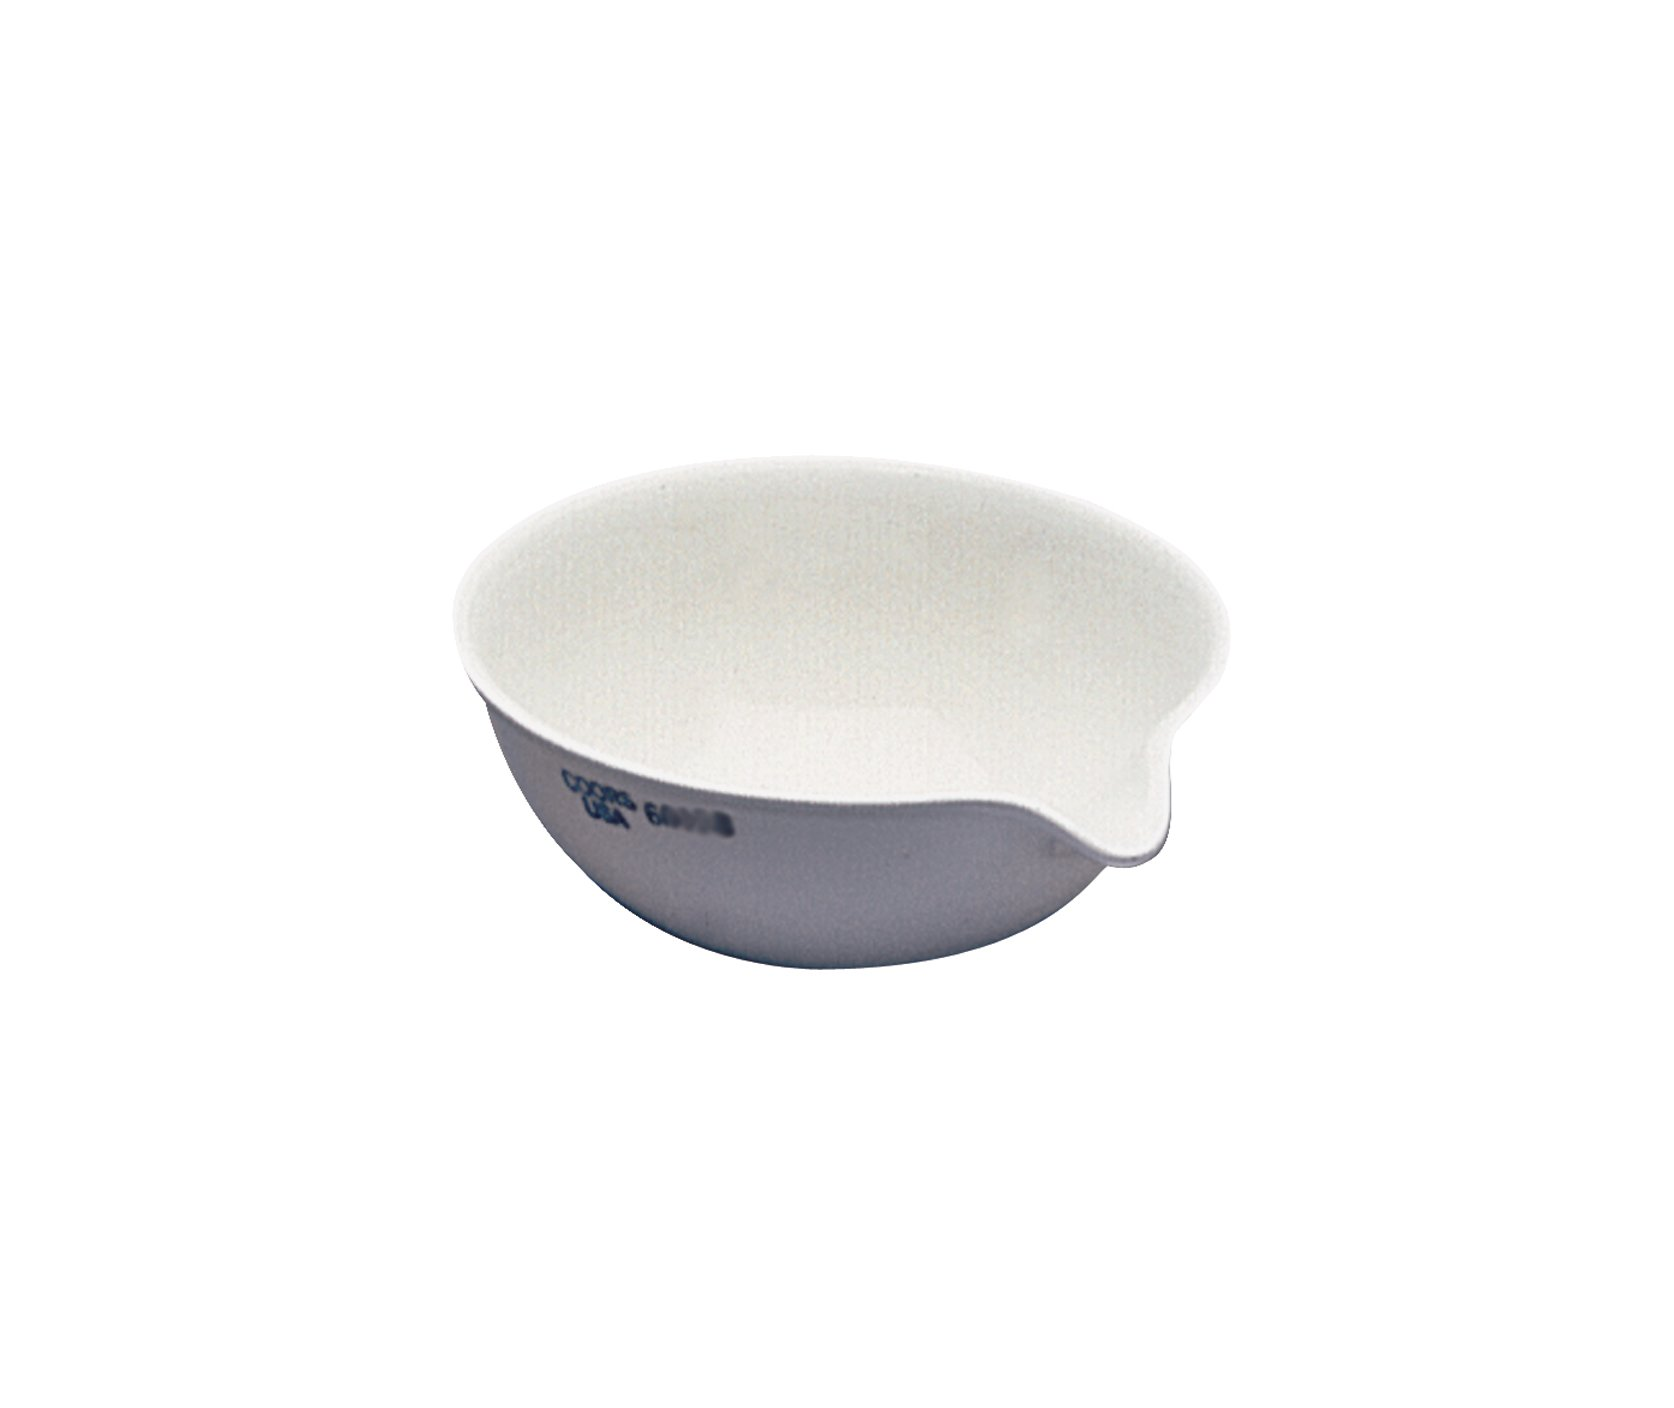 CoorsTek 60198 Porcelain Standard 80mL Evaporating Dish, 30 mm Height x 80mm OD